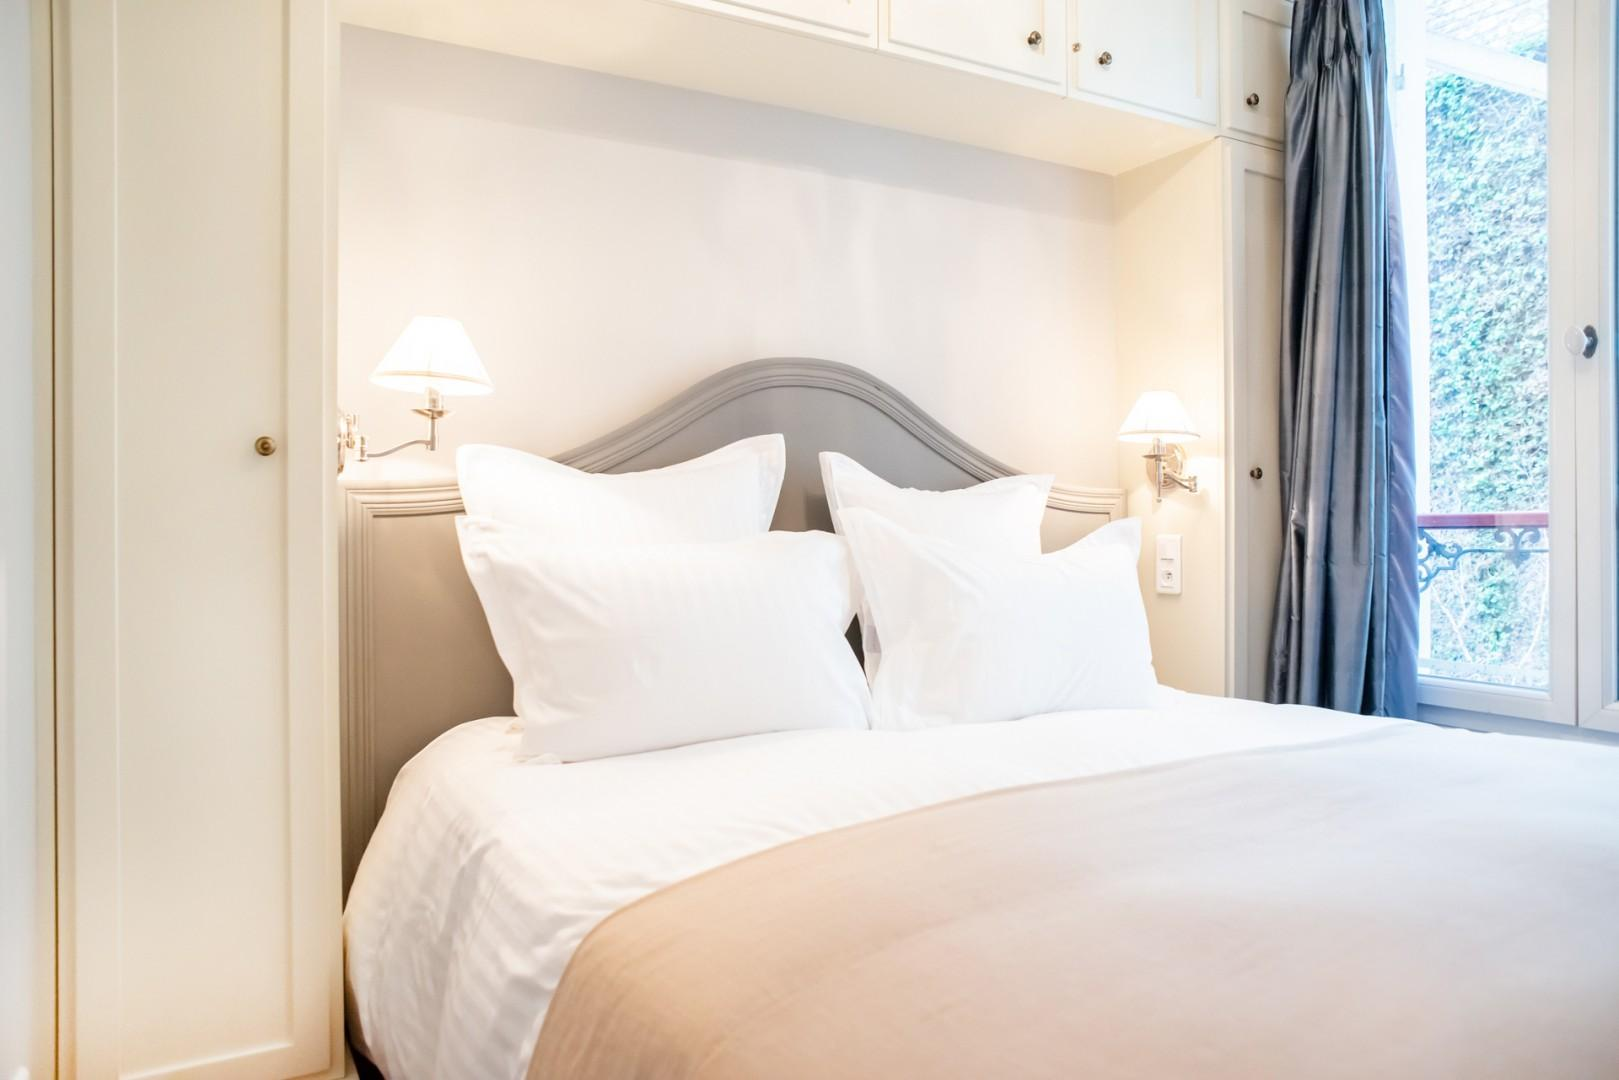 Bedroom 2 is equipped with two comfortable beds, which can be zipped together.